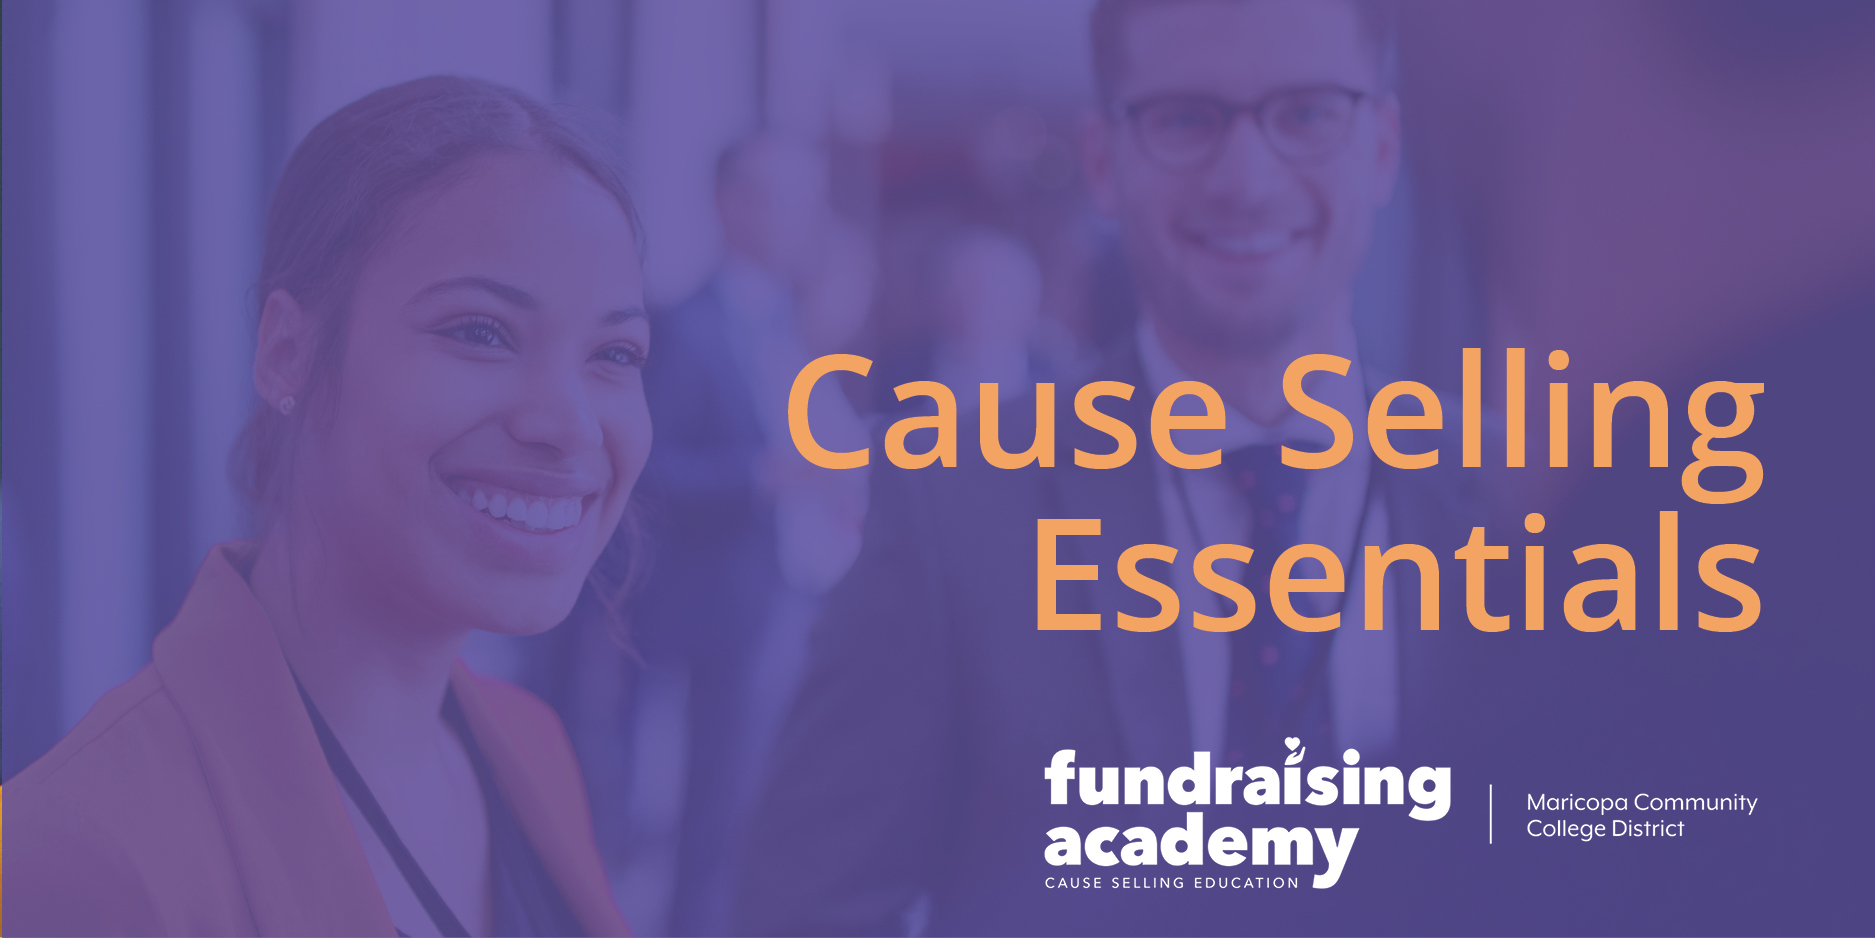 Fundraising Academy - Cause Selling Essentials